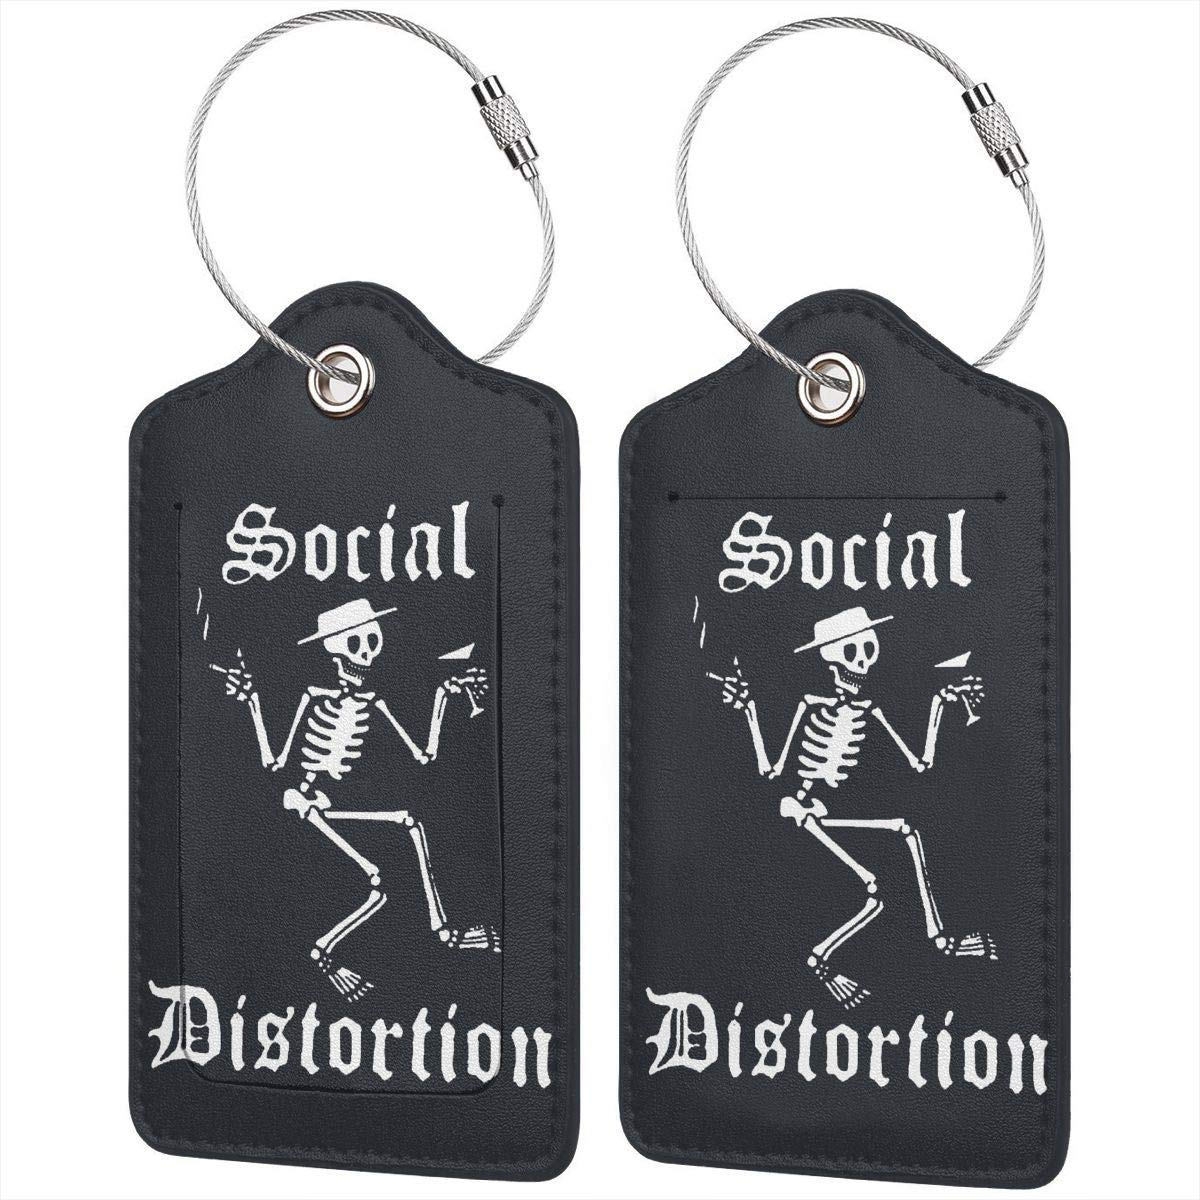 Social Come Distortion Funny Jogging Leather Luggage Tags Suitcase Tag Travel Bag Labels With Privacy Cover For Men Women 2 Pack 4 Pack